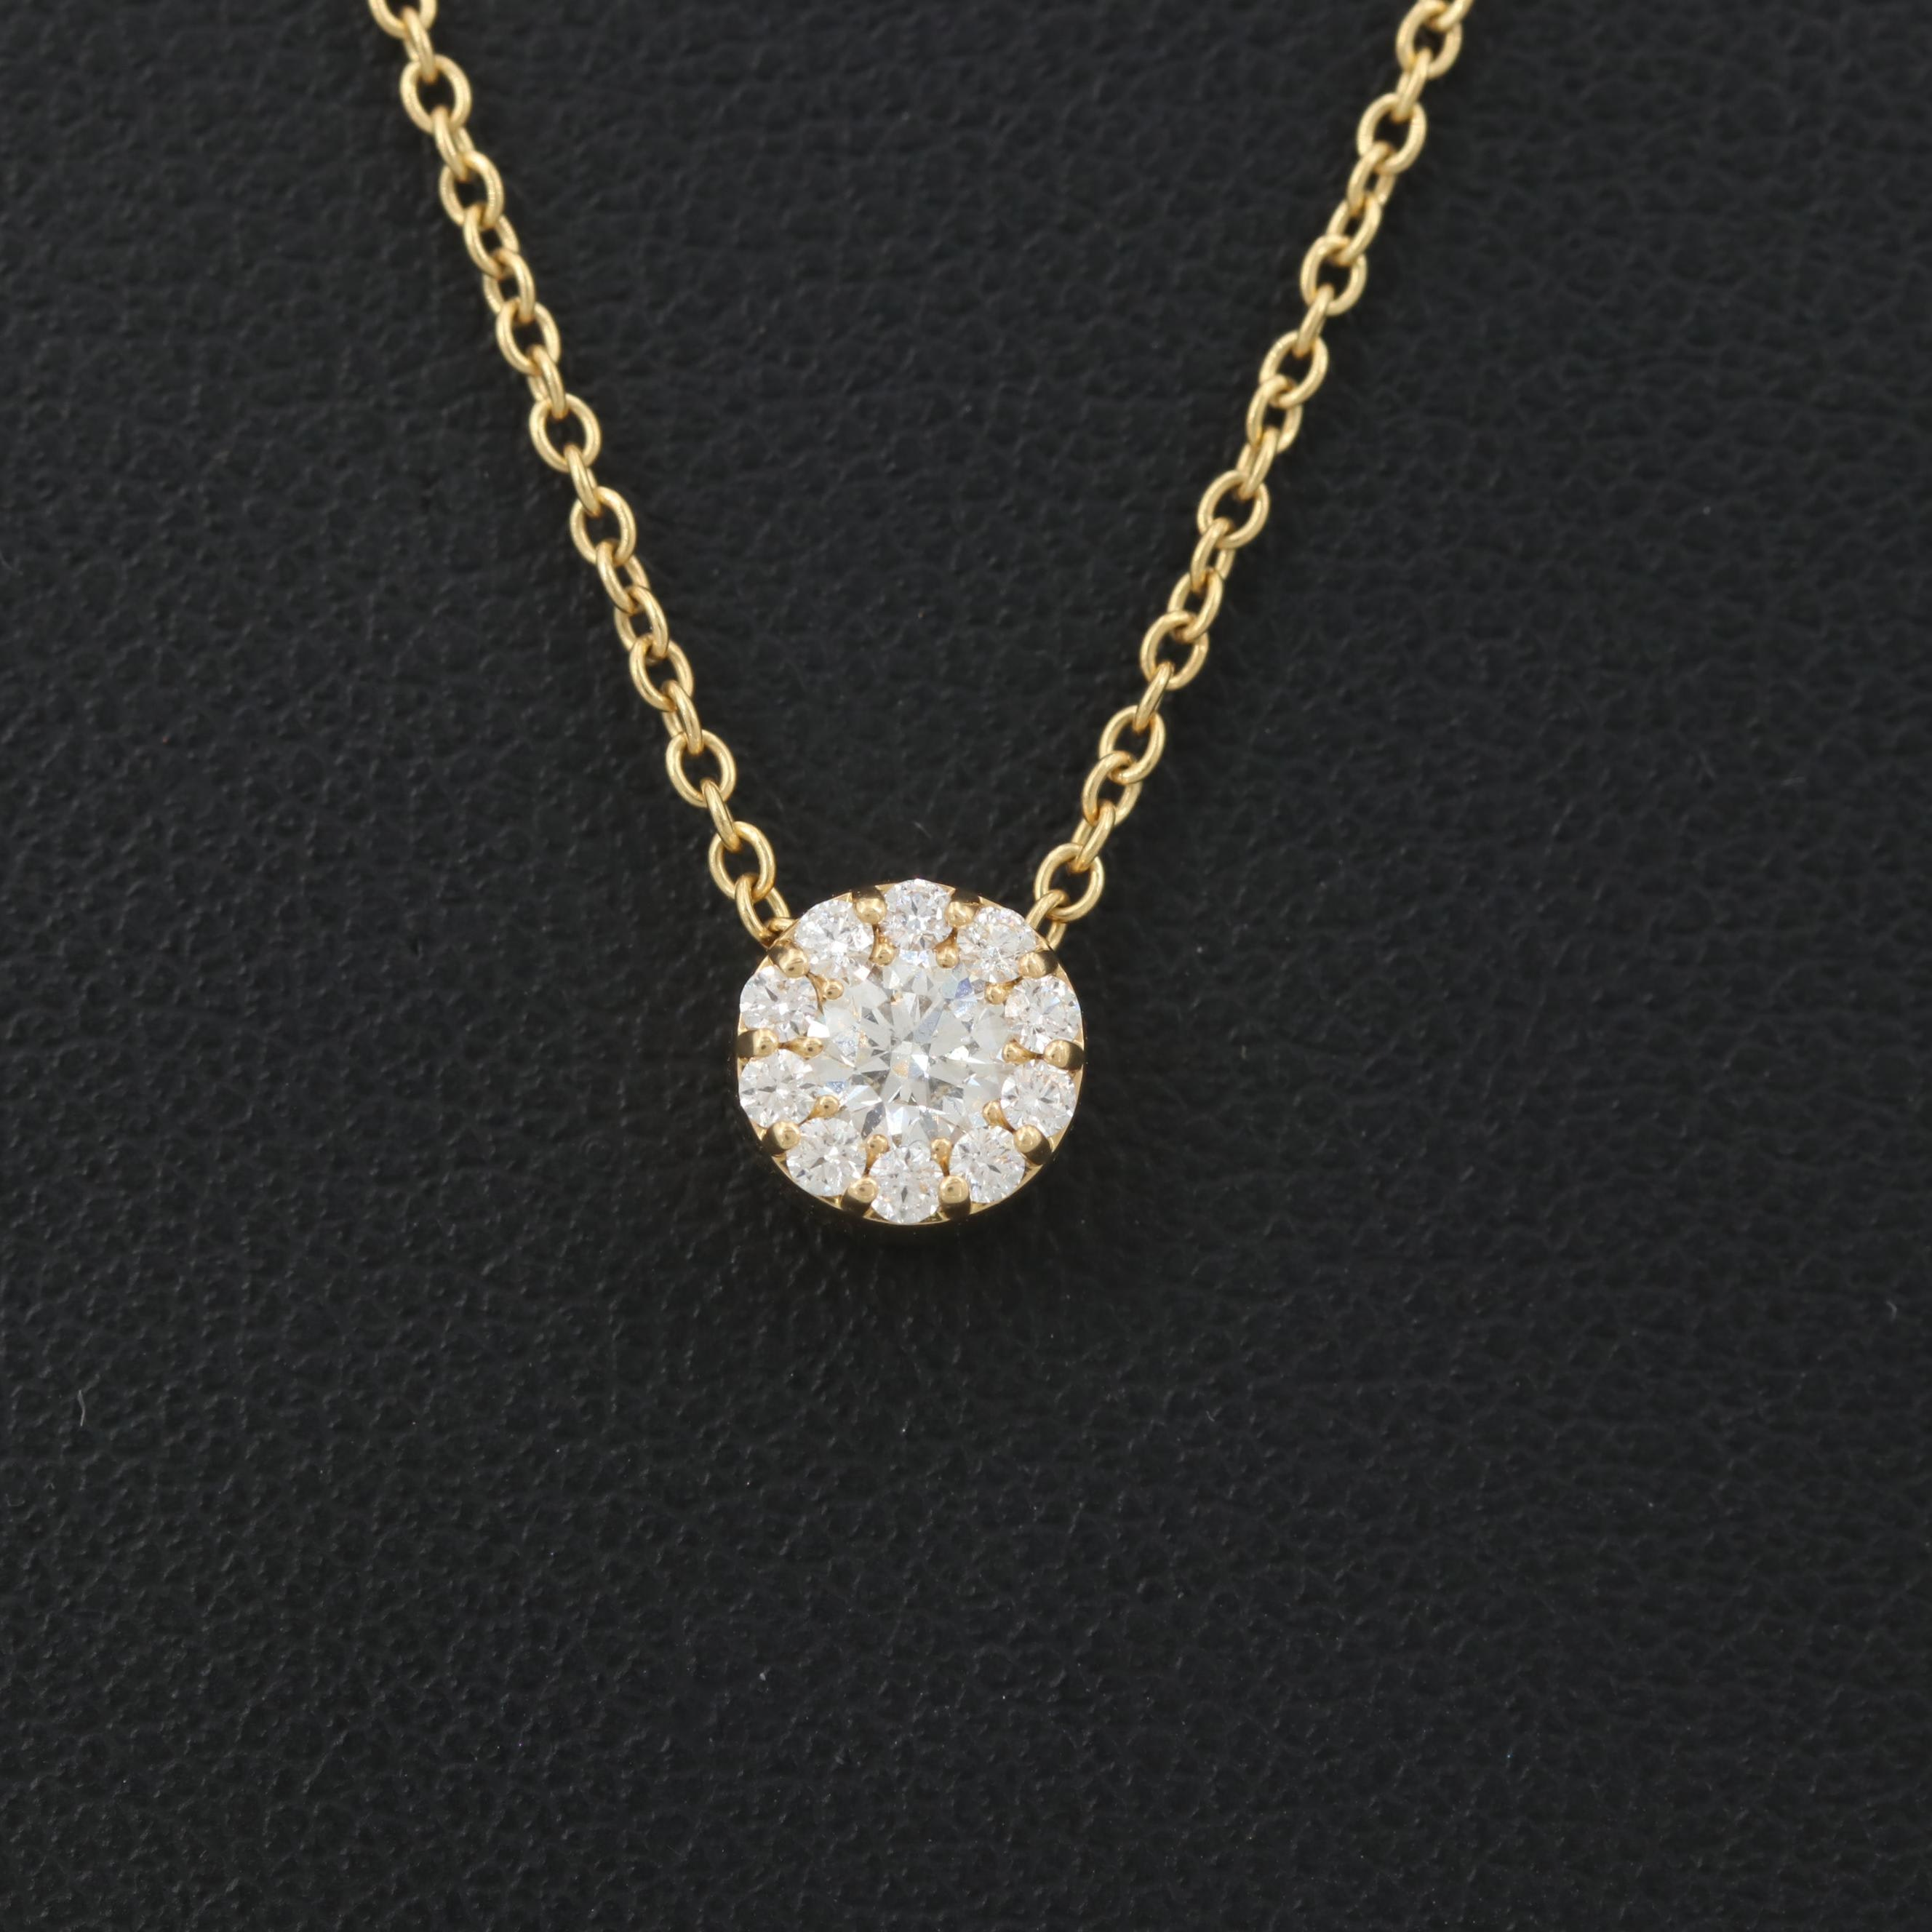 """18K Yellow Gold """"Hearts on Fire"""" Diamond Pendant Necklace"""